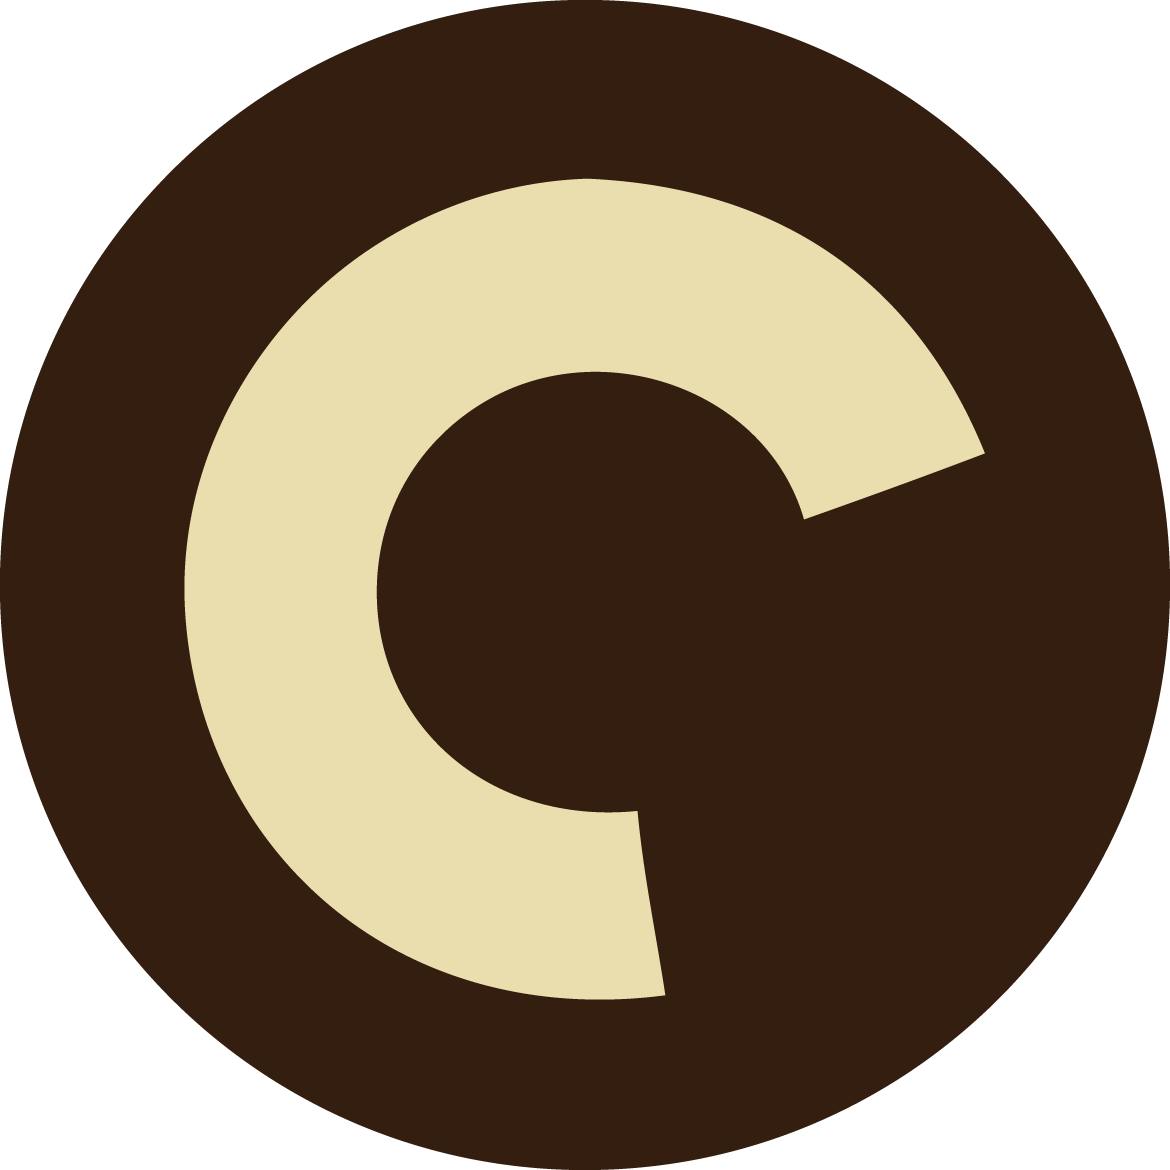 The Criterion Collection's icon